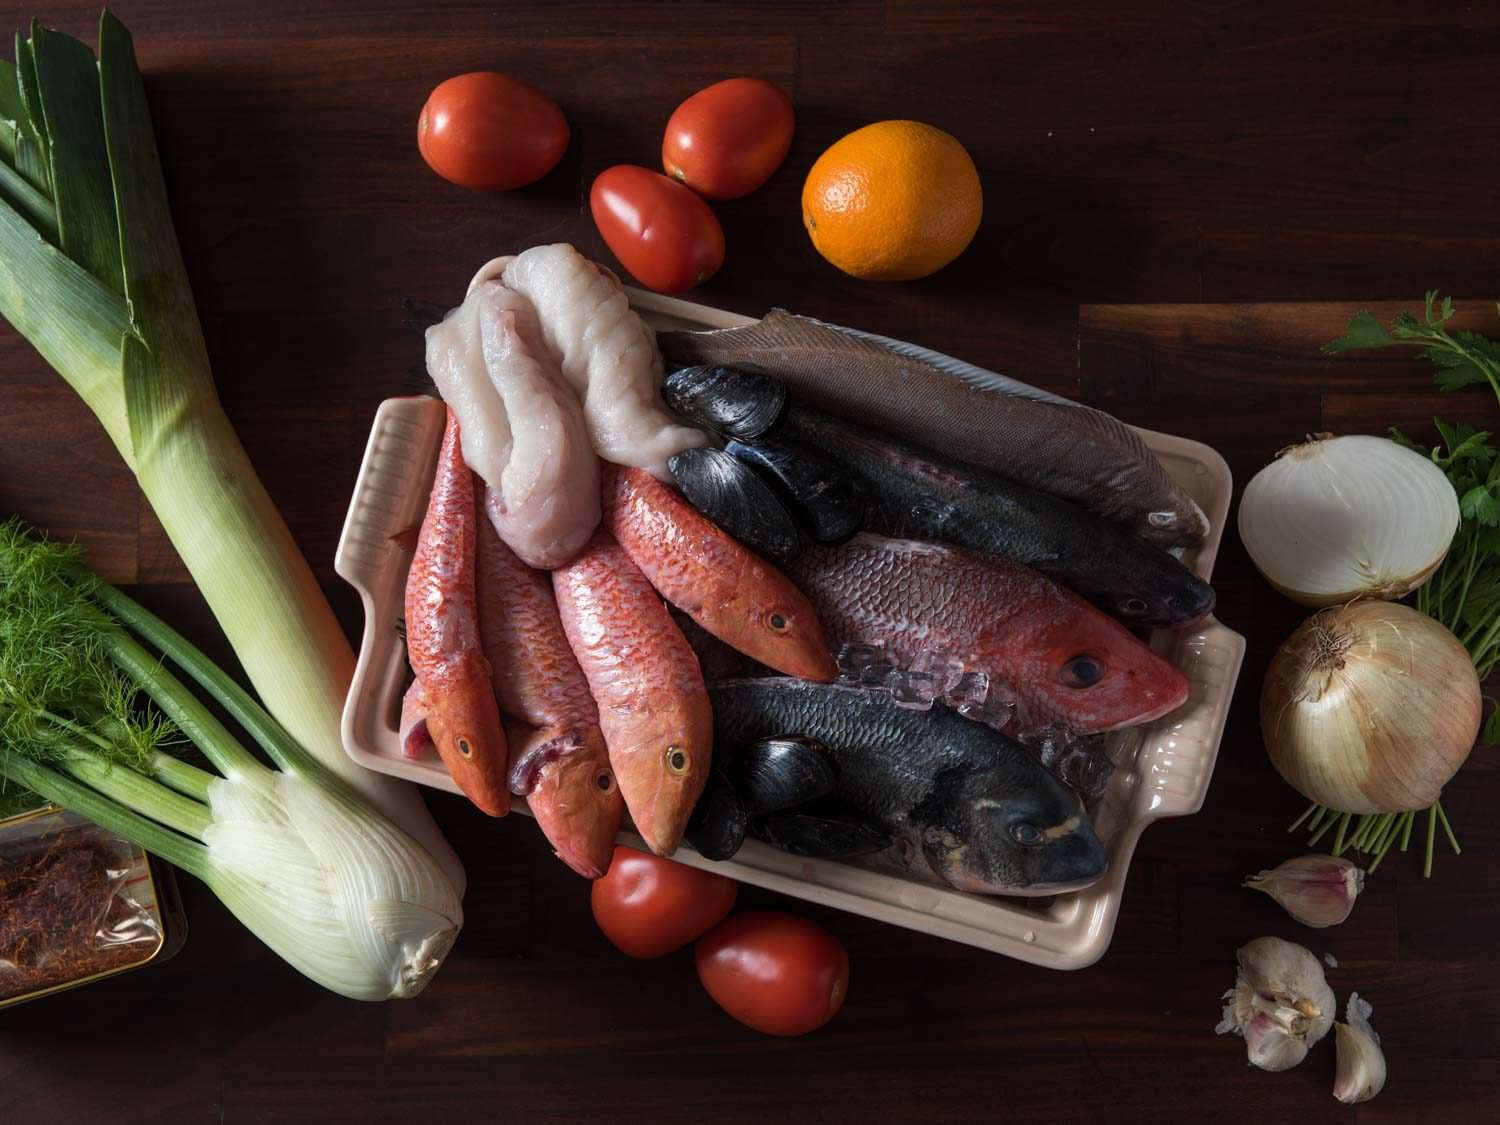 The ingredients used for bouillabaisse: mixed fish, fennel, onion, garlic, tomato, orange, saffron, and more.